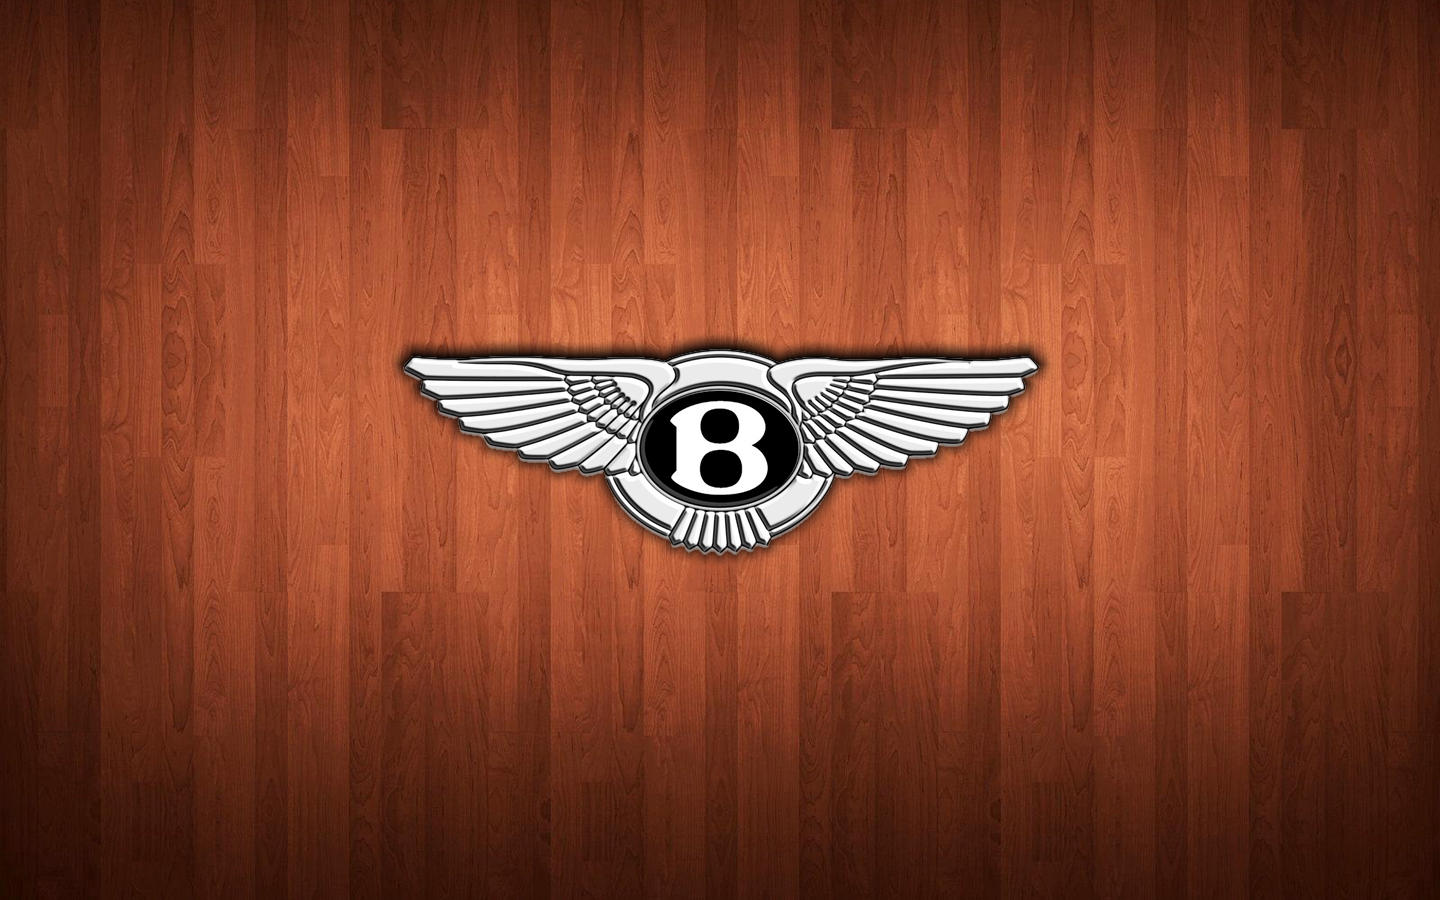 Ferrari Carbon This Bentley Logo Was Composited In Corel Photopaint